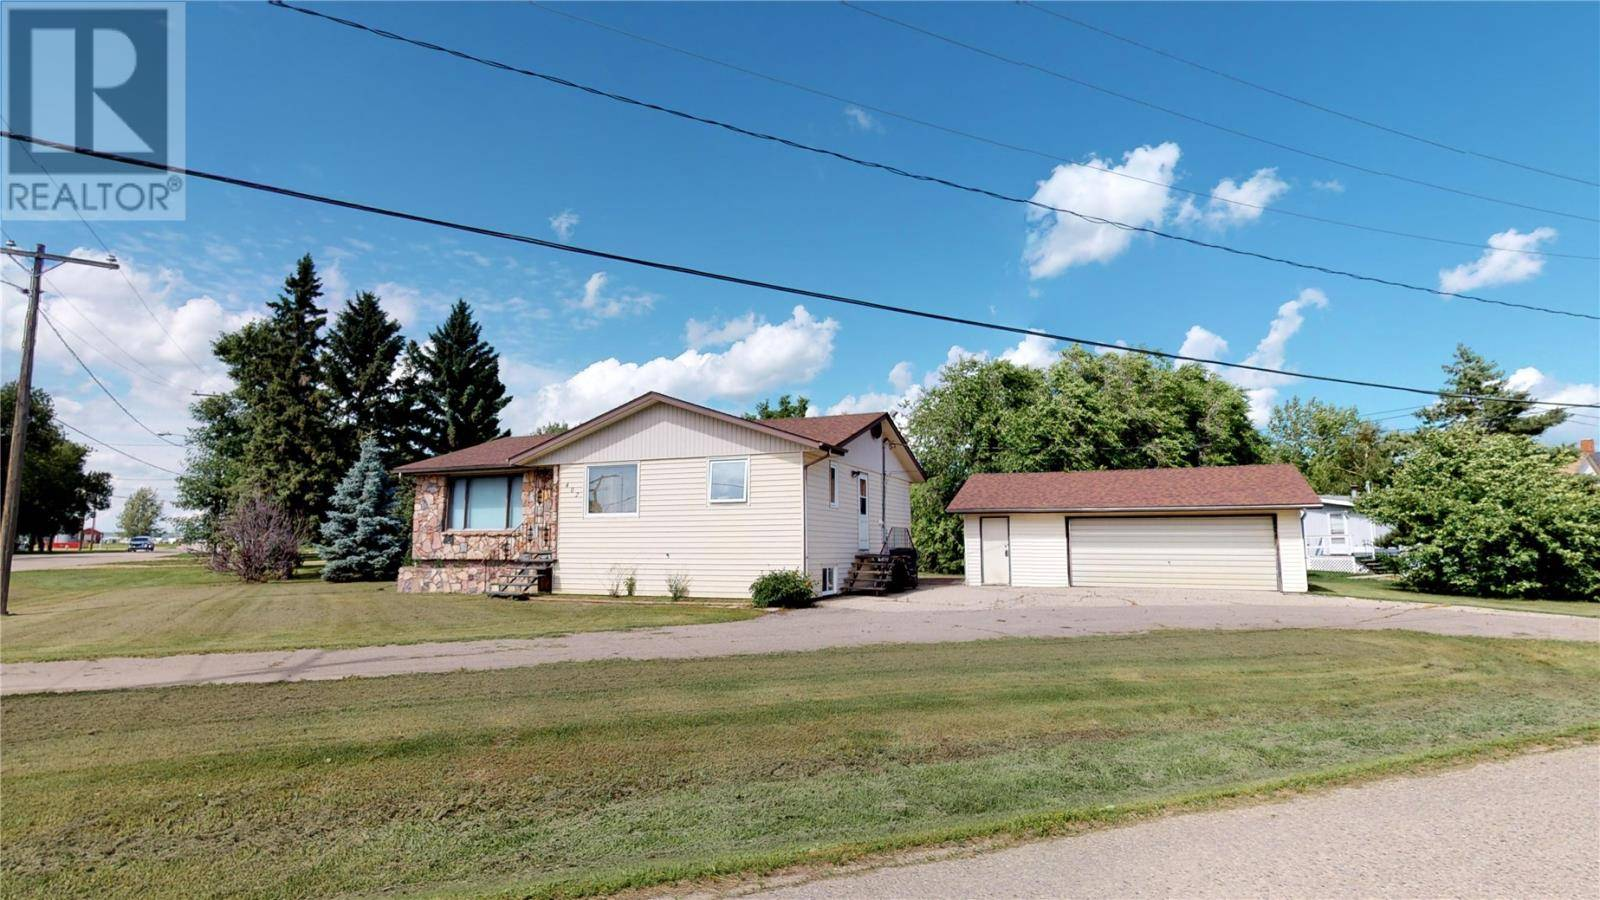 House for sale at 402 Main St Arcola Saskatchewan - MLS: SK759092